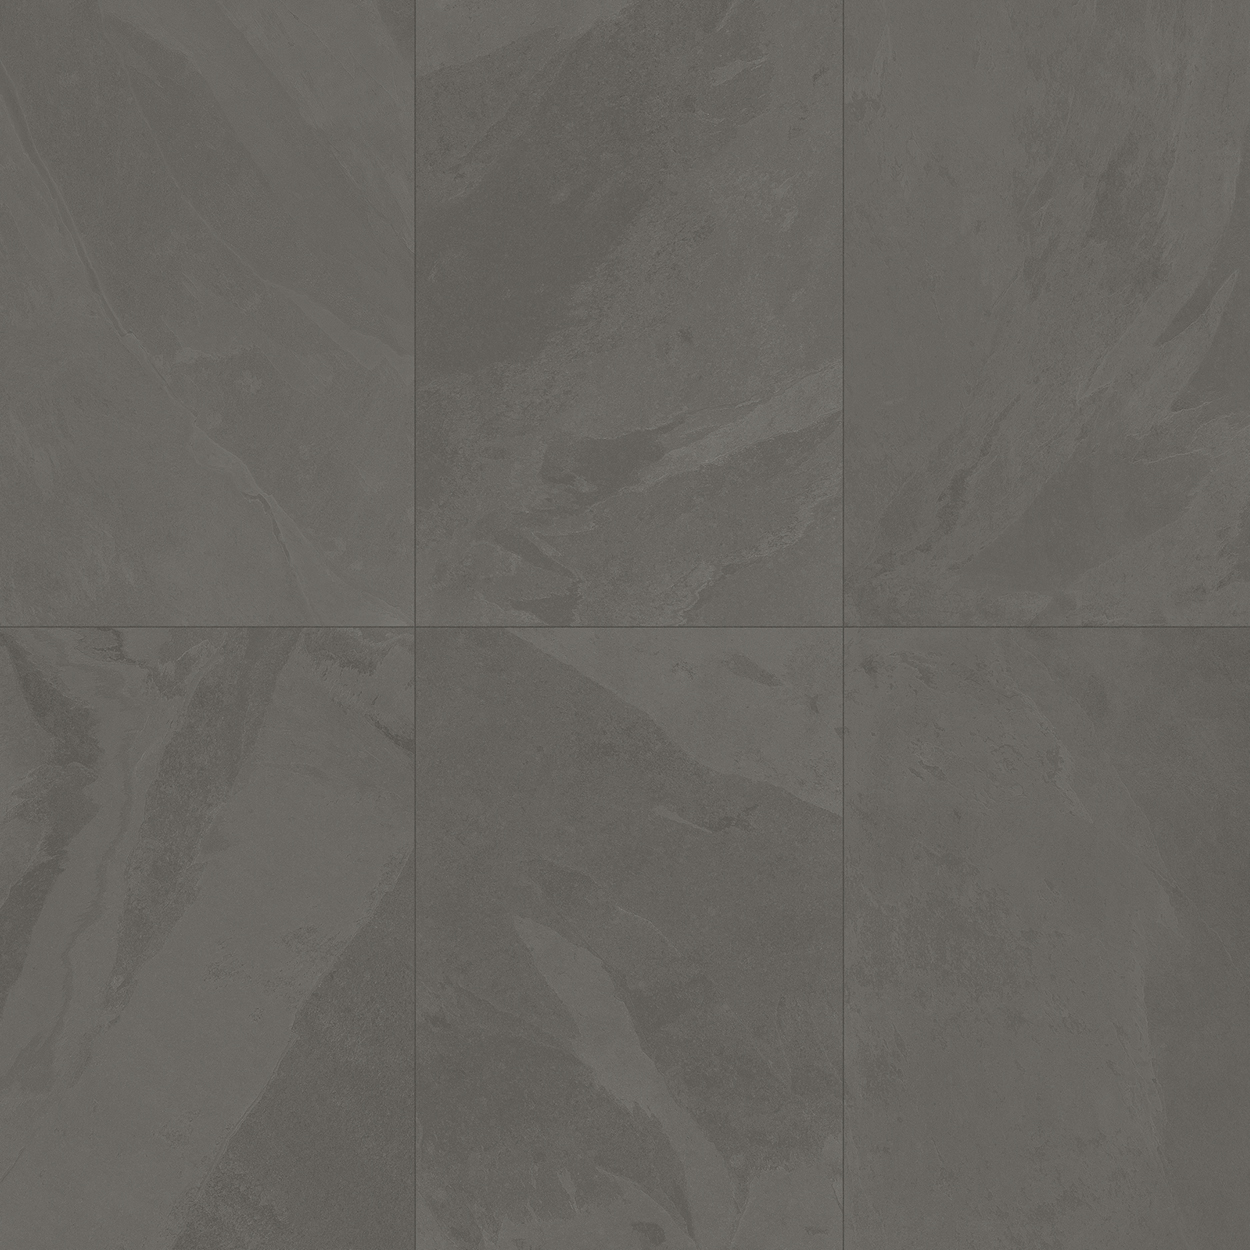 24 x 48 Brazilian Slate Elephant Grey Rectified Porcelain tile